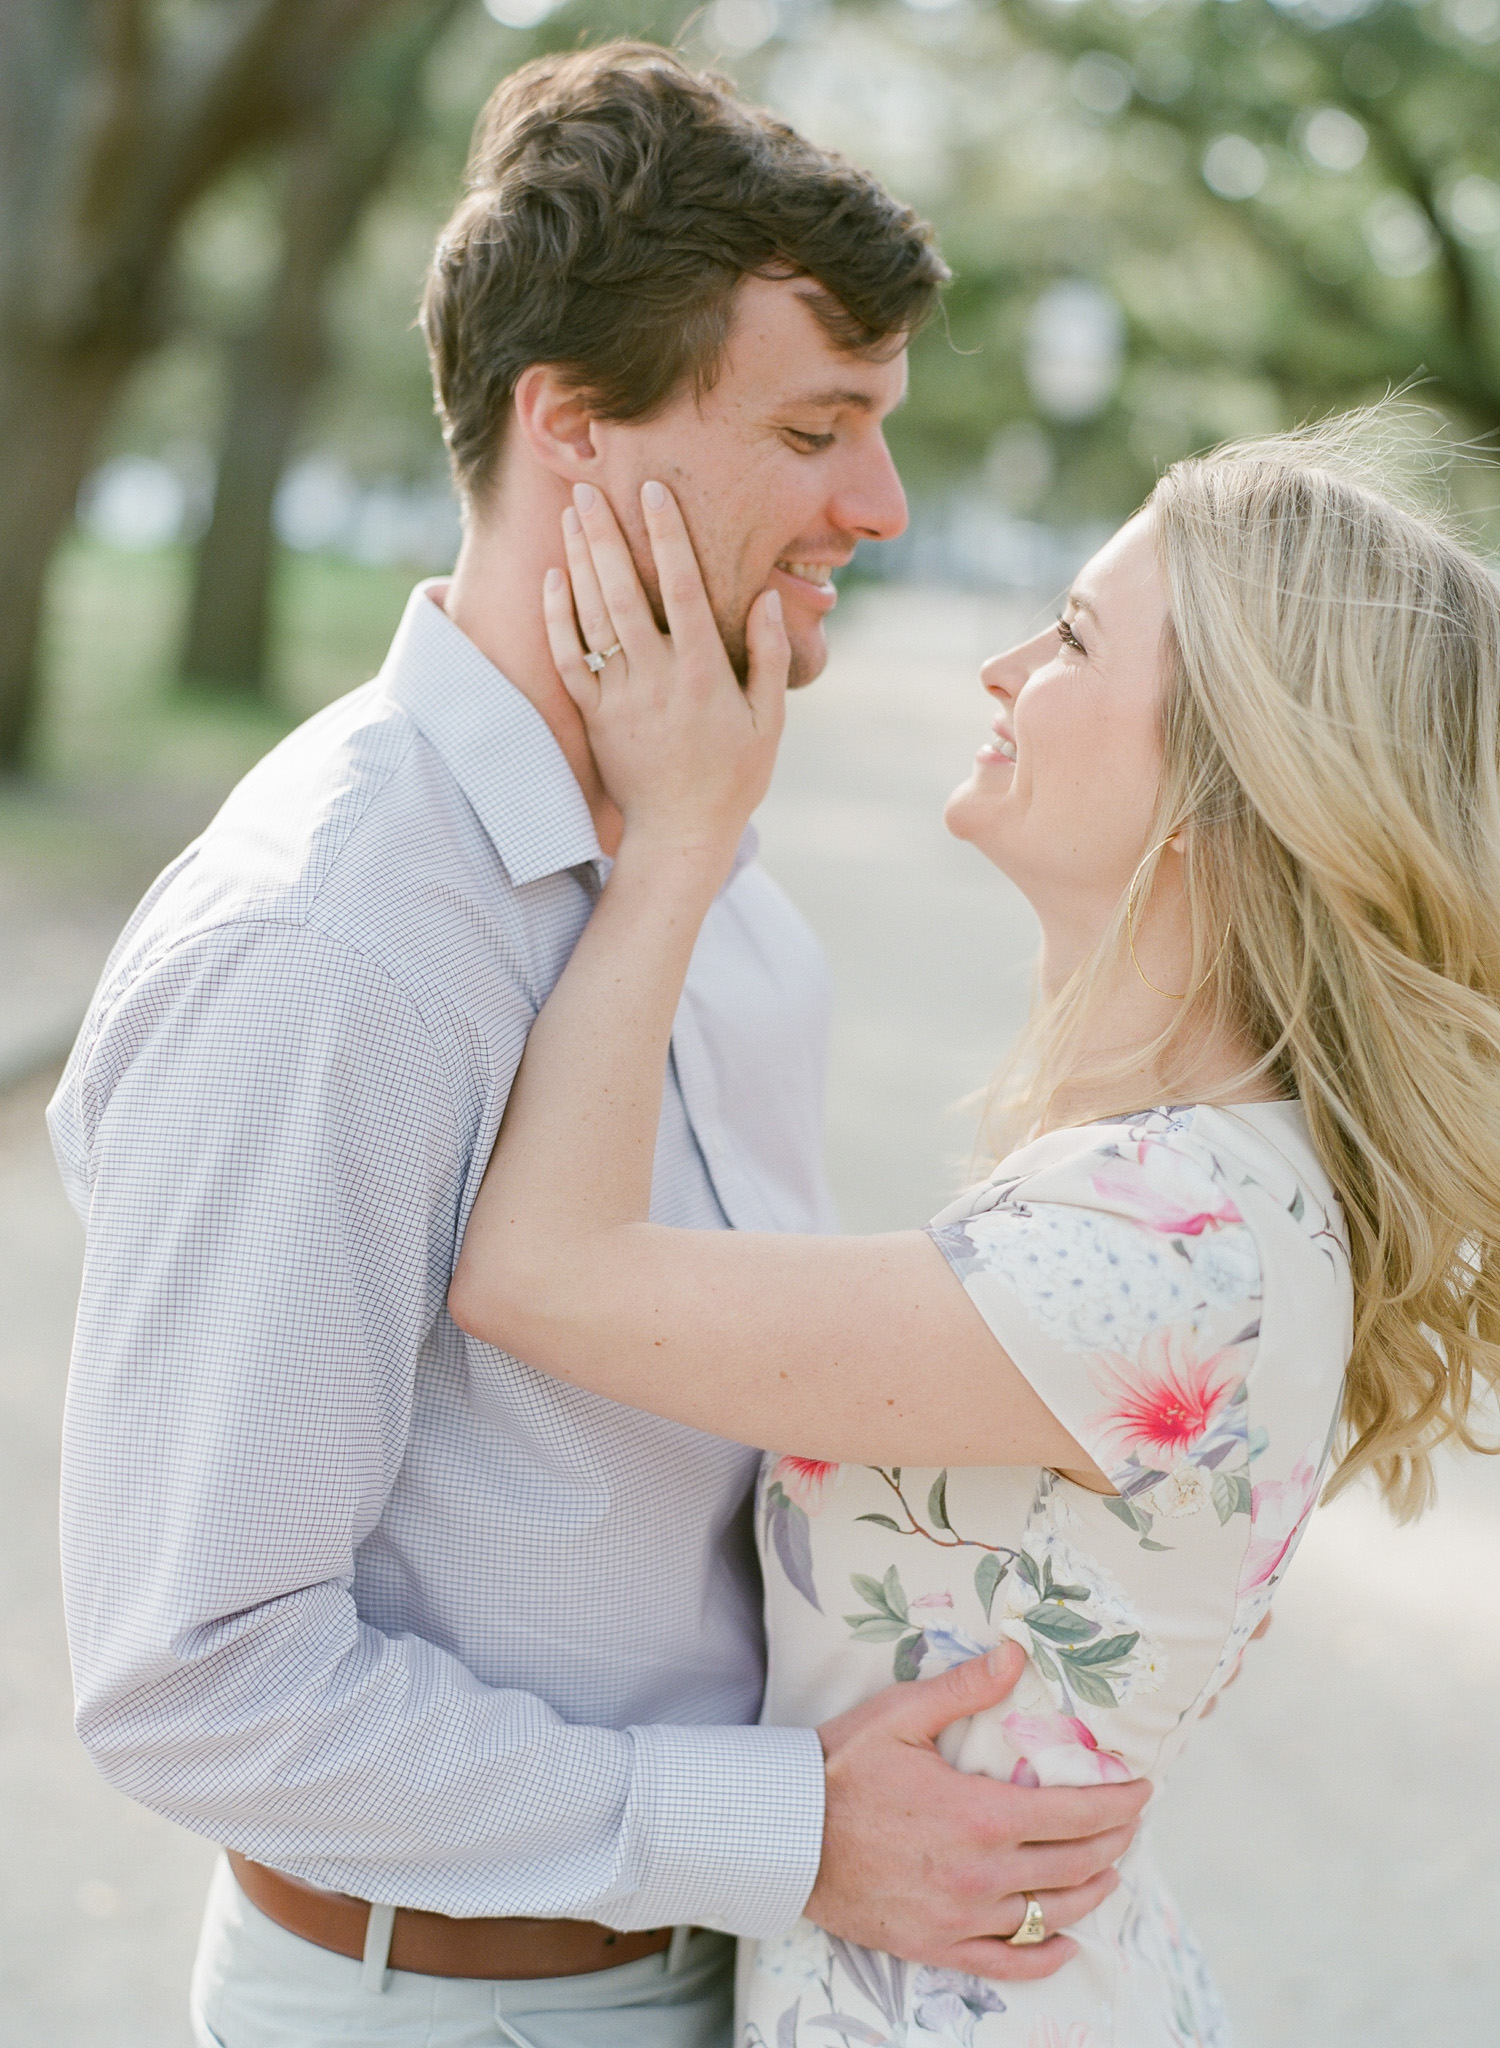 Charleston-Engagement-Session-Photos-88.jpg